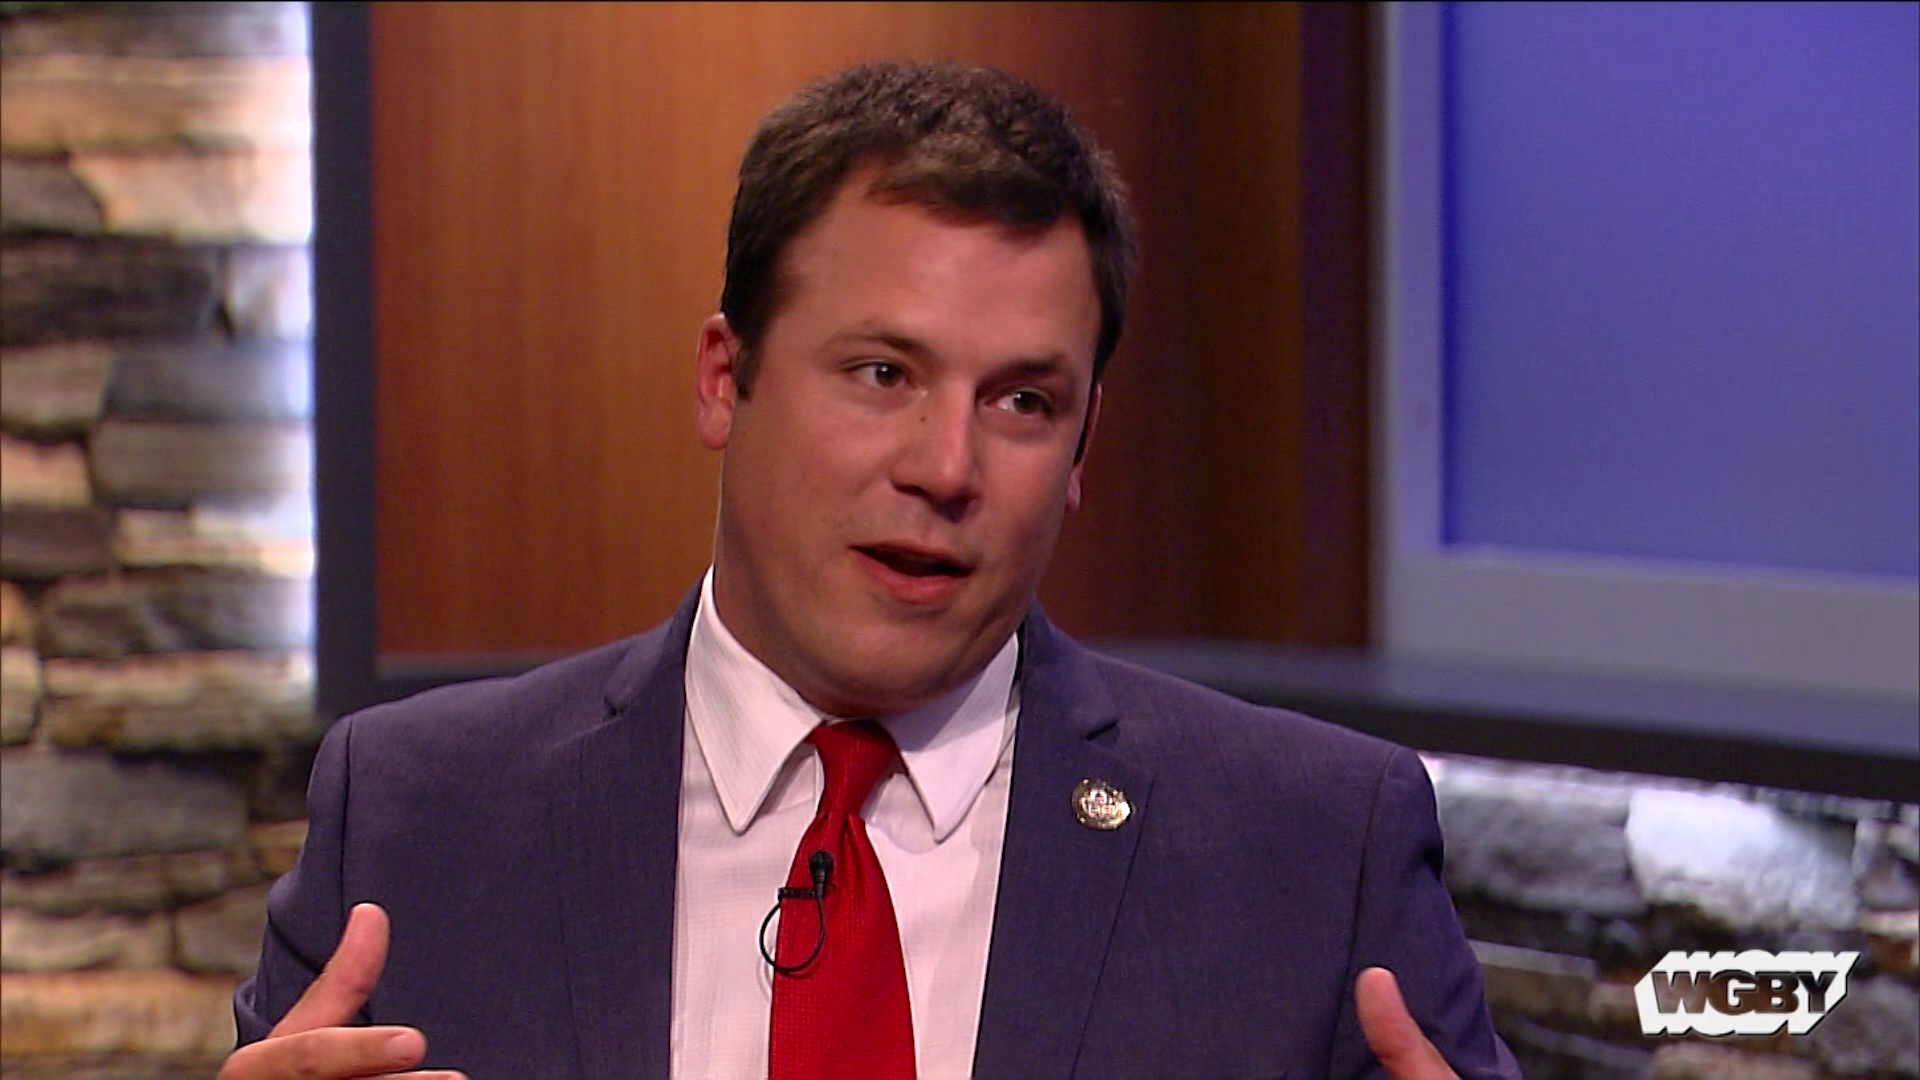 Mayor Will Reichelt & councilor George Kelly discuss the council's vote against legalized marijuana in West Springfield & why the mayor vetoed the measure.